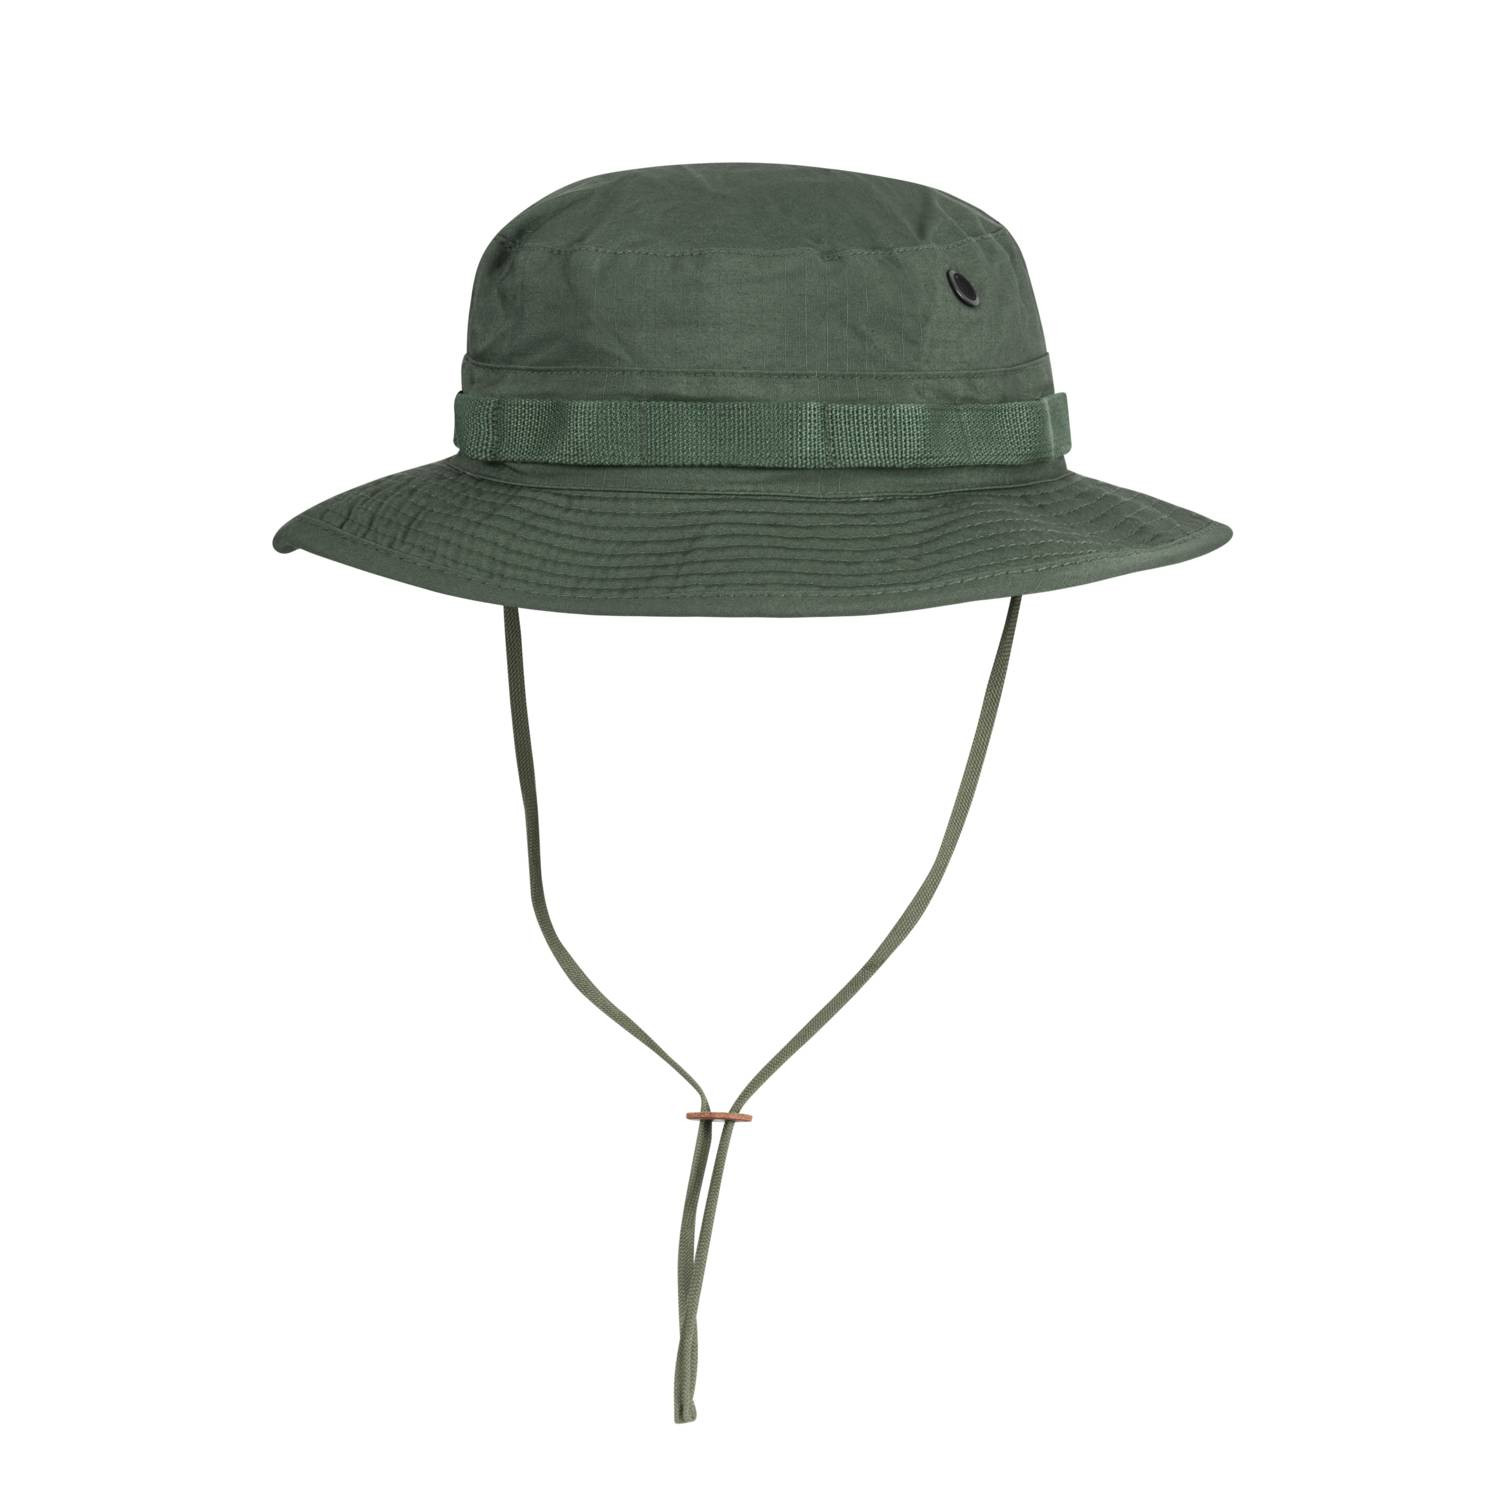 BOONIE Hat - Cotton Ripstop f6469b6ed55